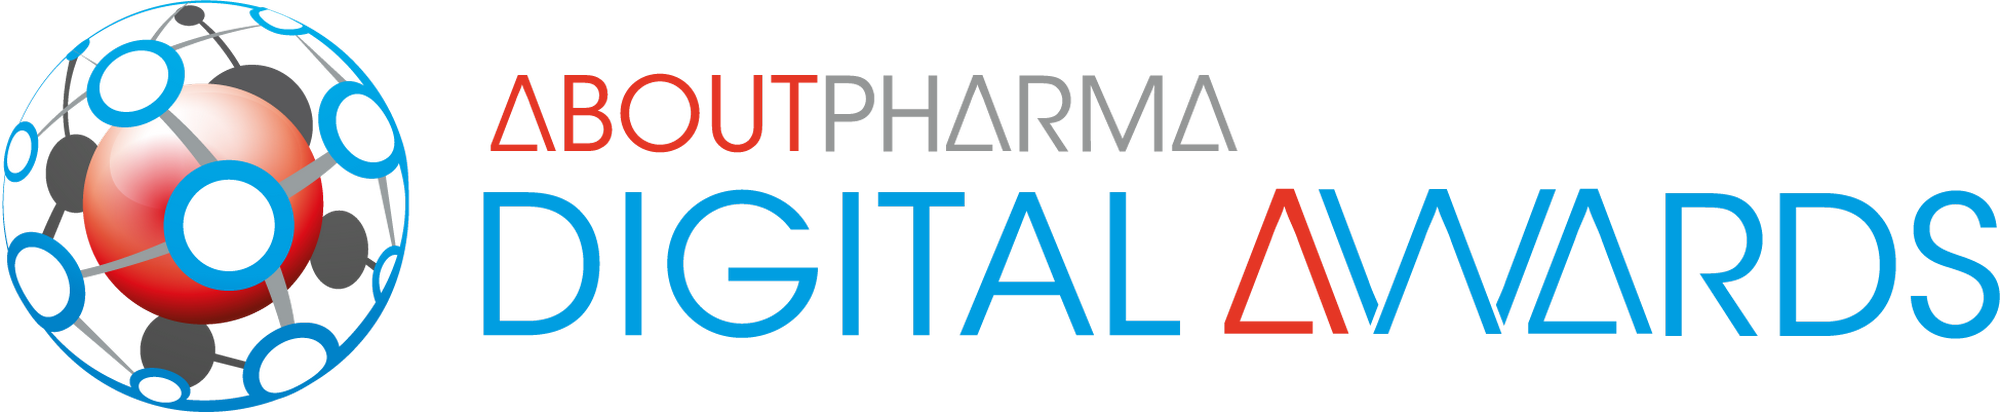 About Pharma Digital Awards